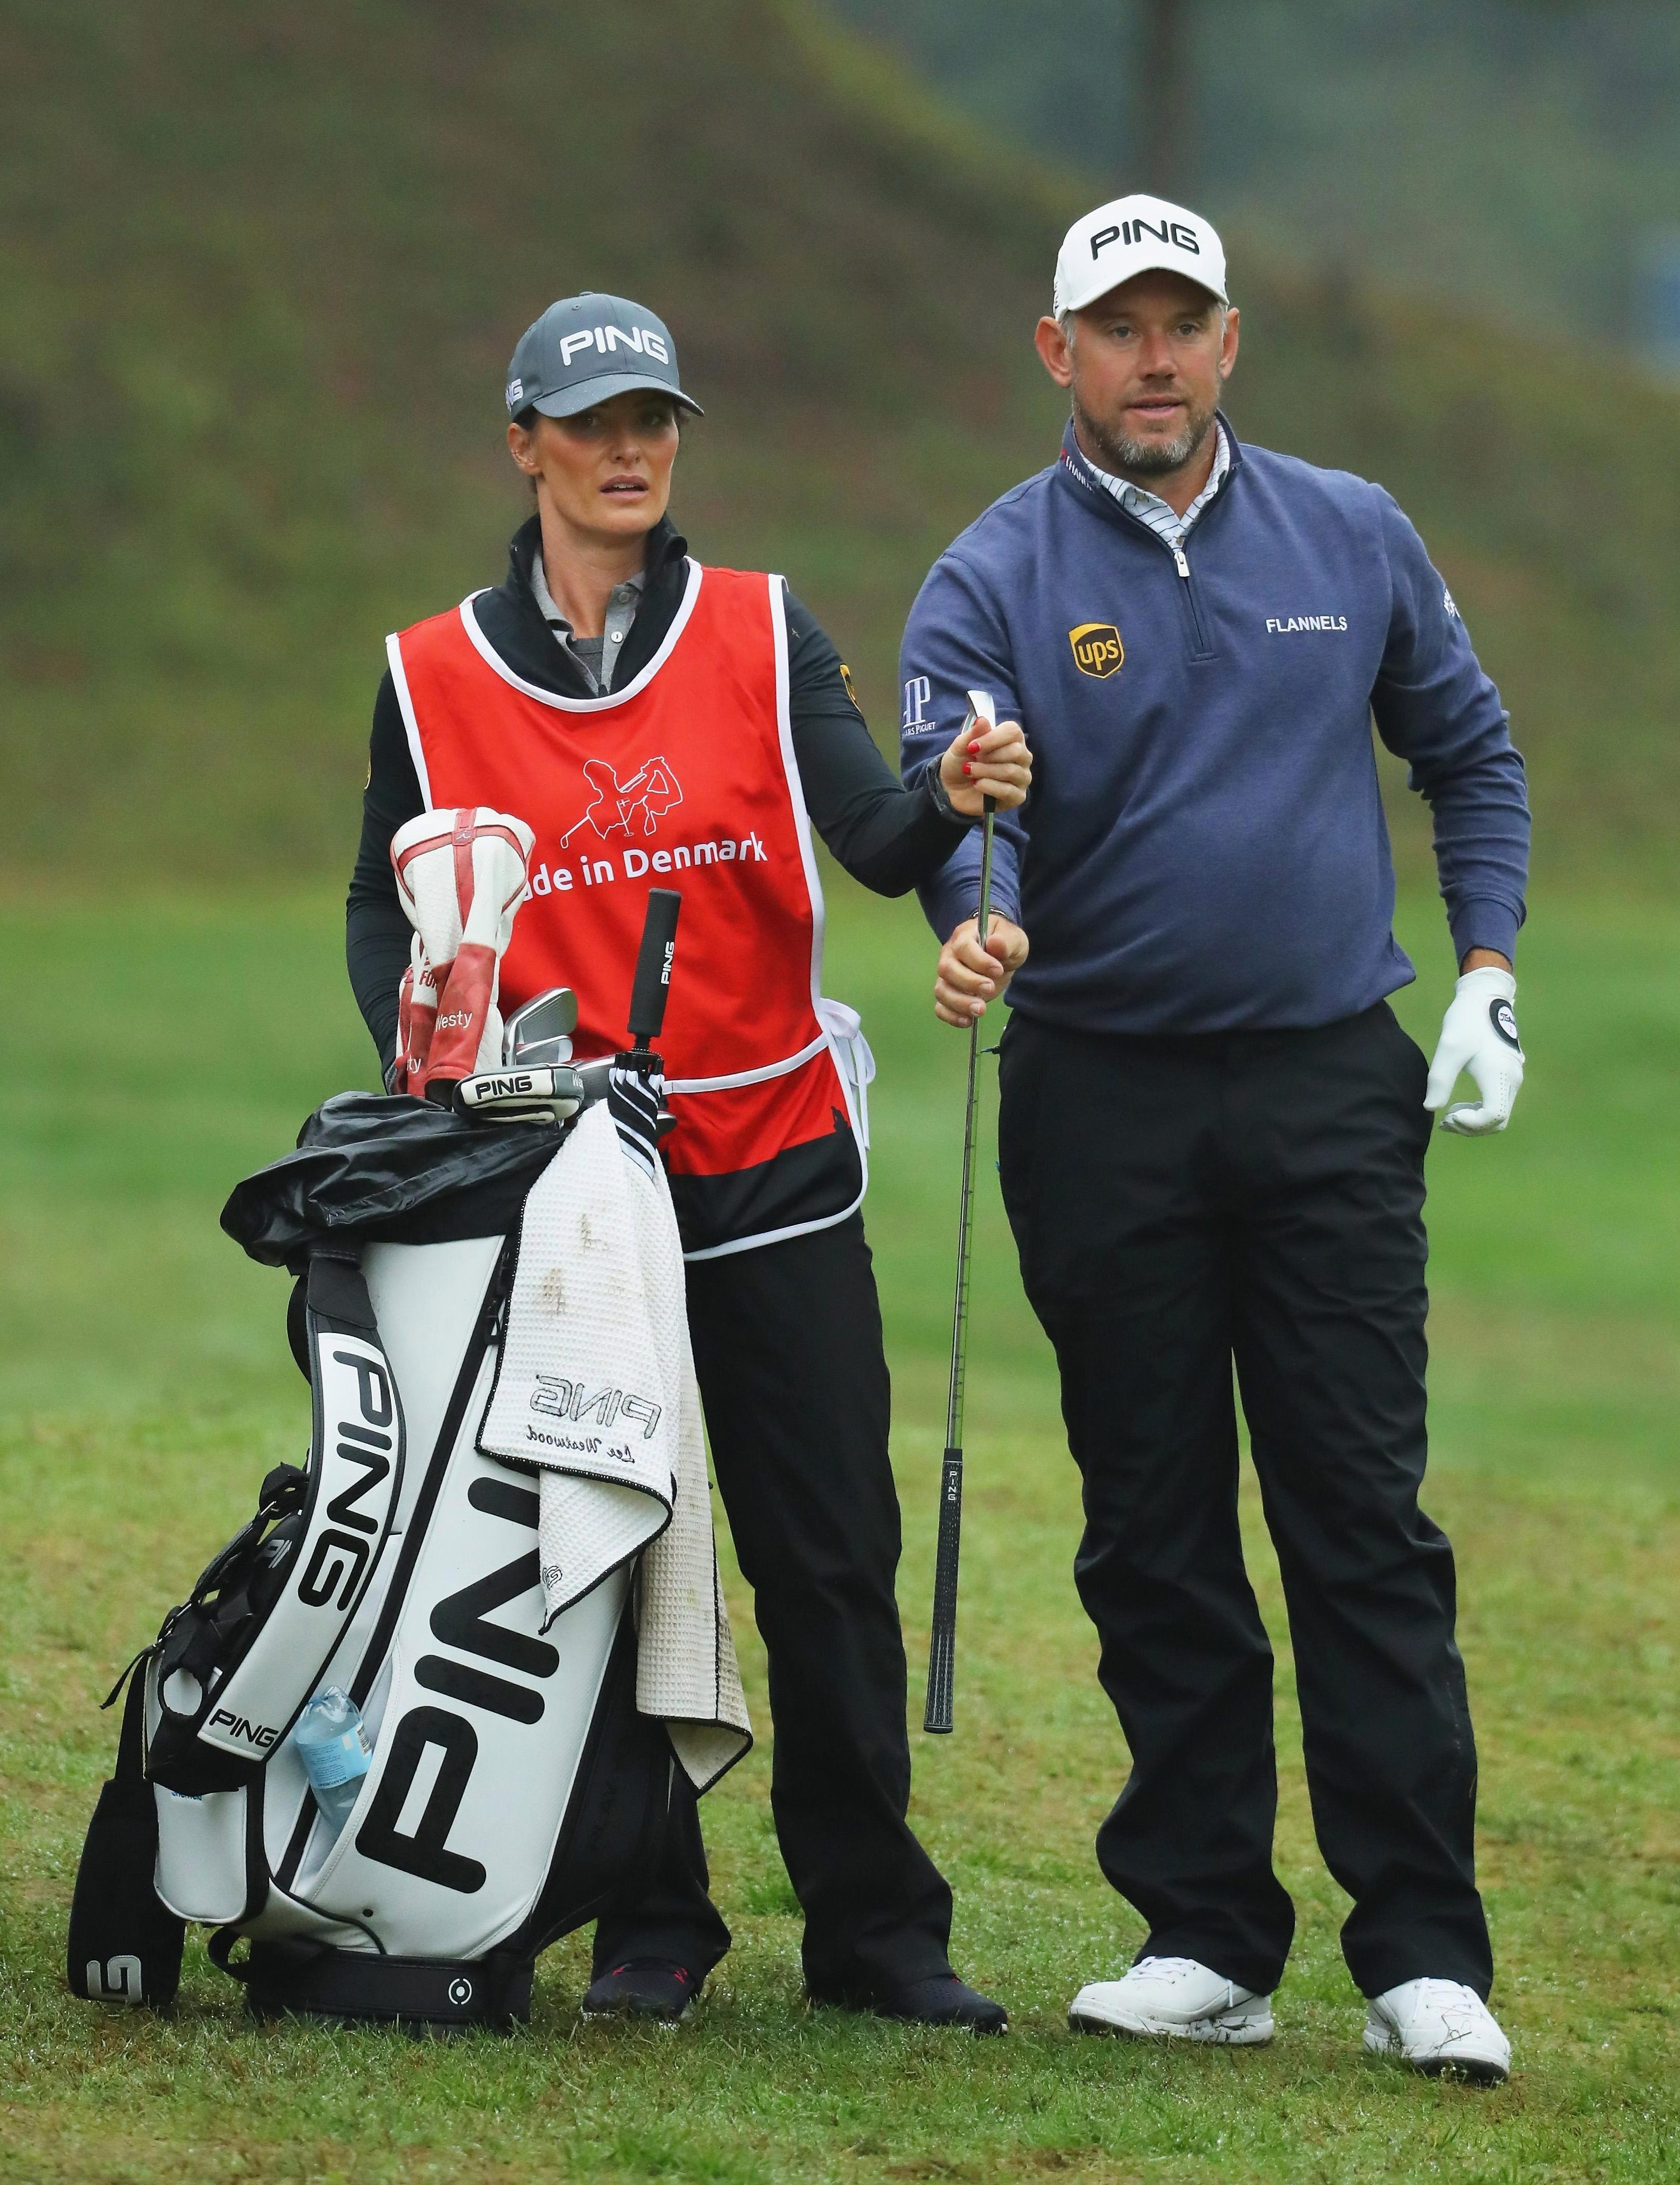 Lee Westwood has girlfriend Helen Storey on the bag this week